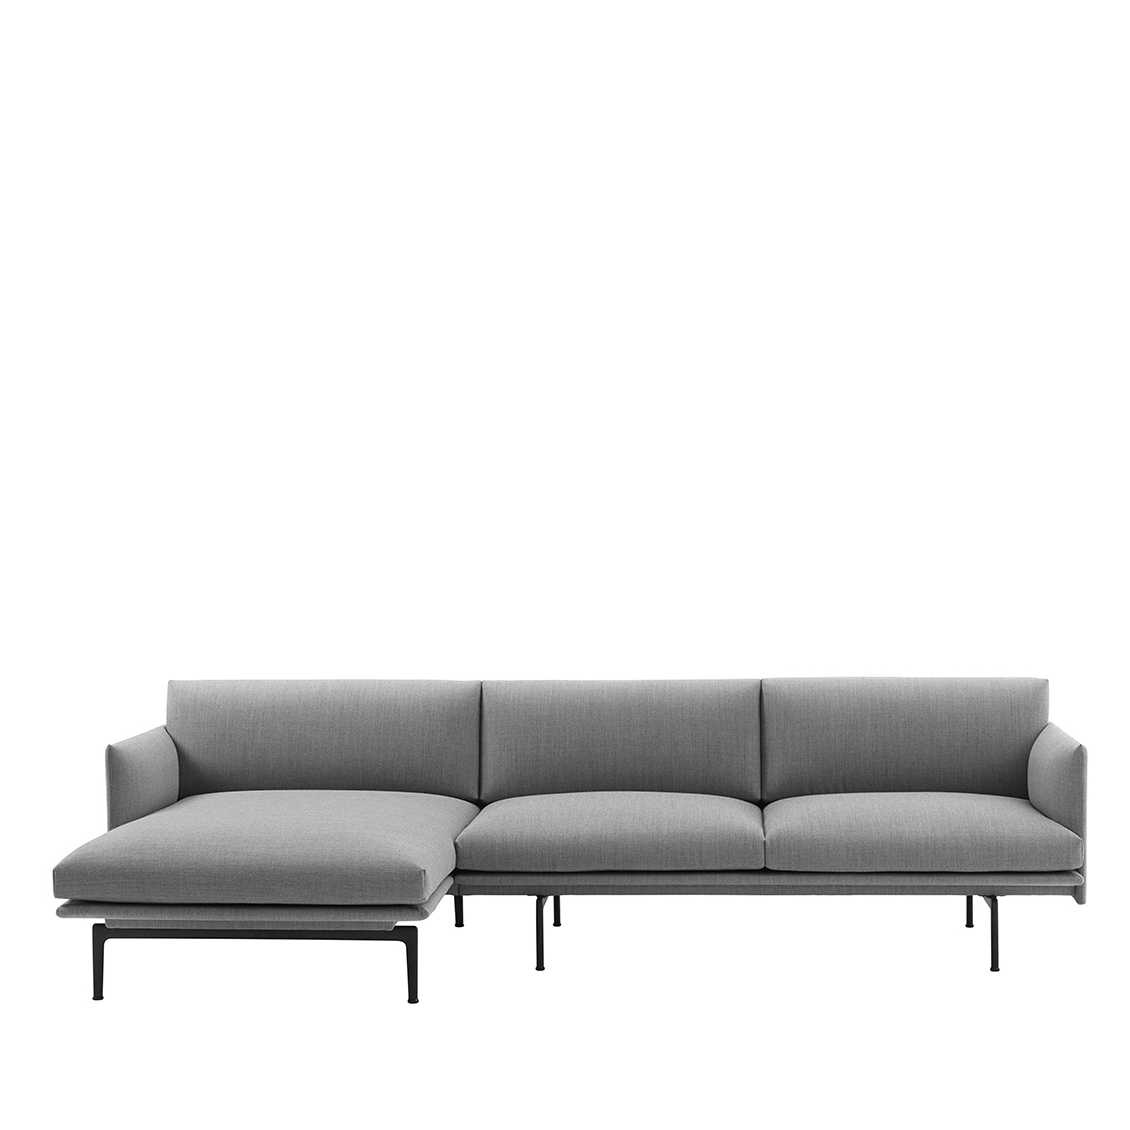 Hoekbank Met Chaise Longue.Outline Bank Met Chaise Longue